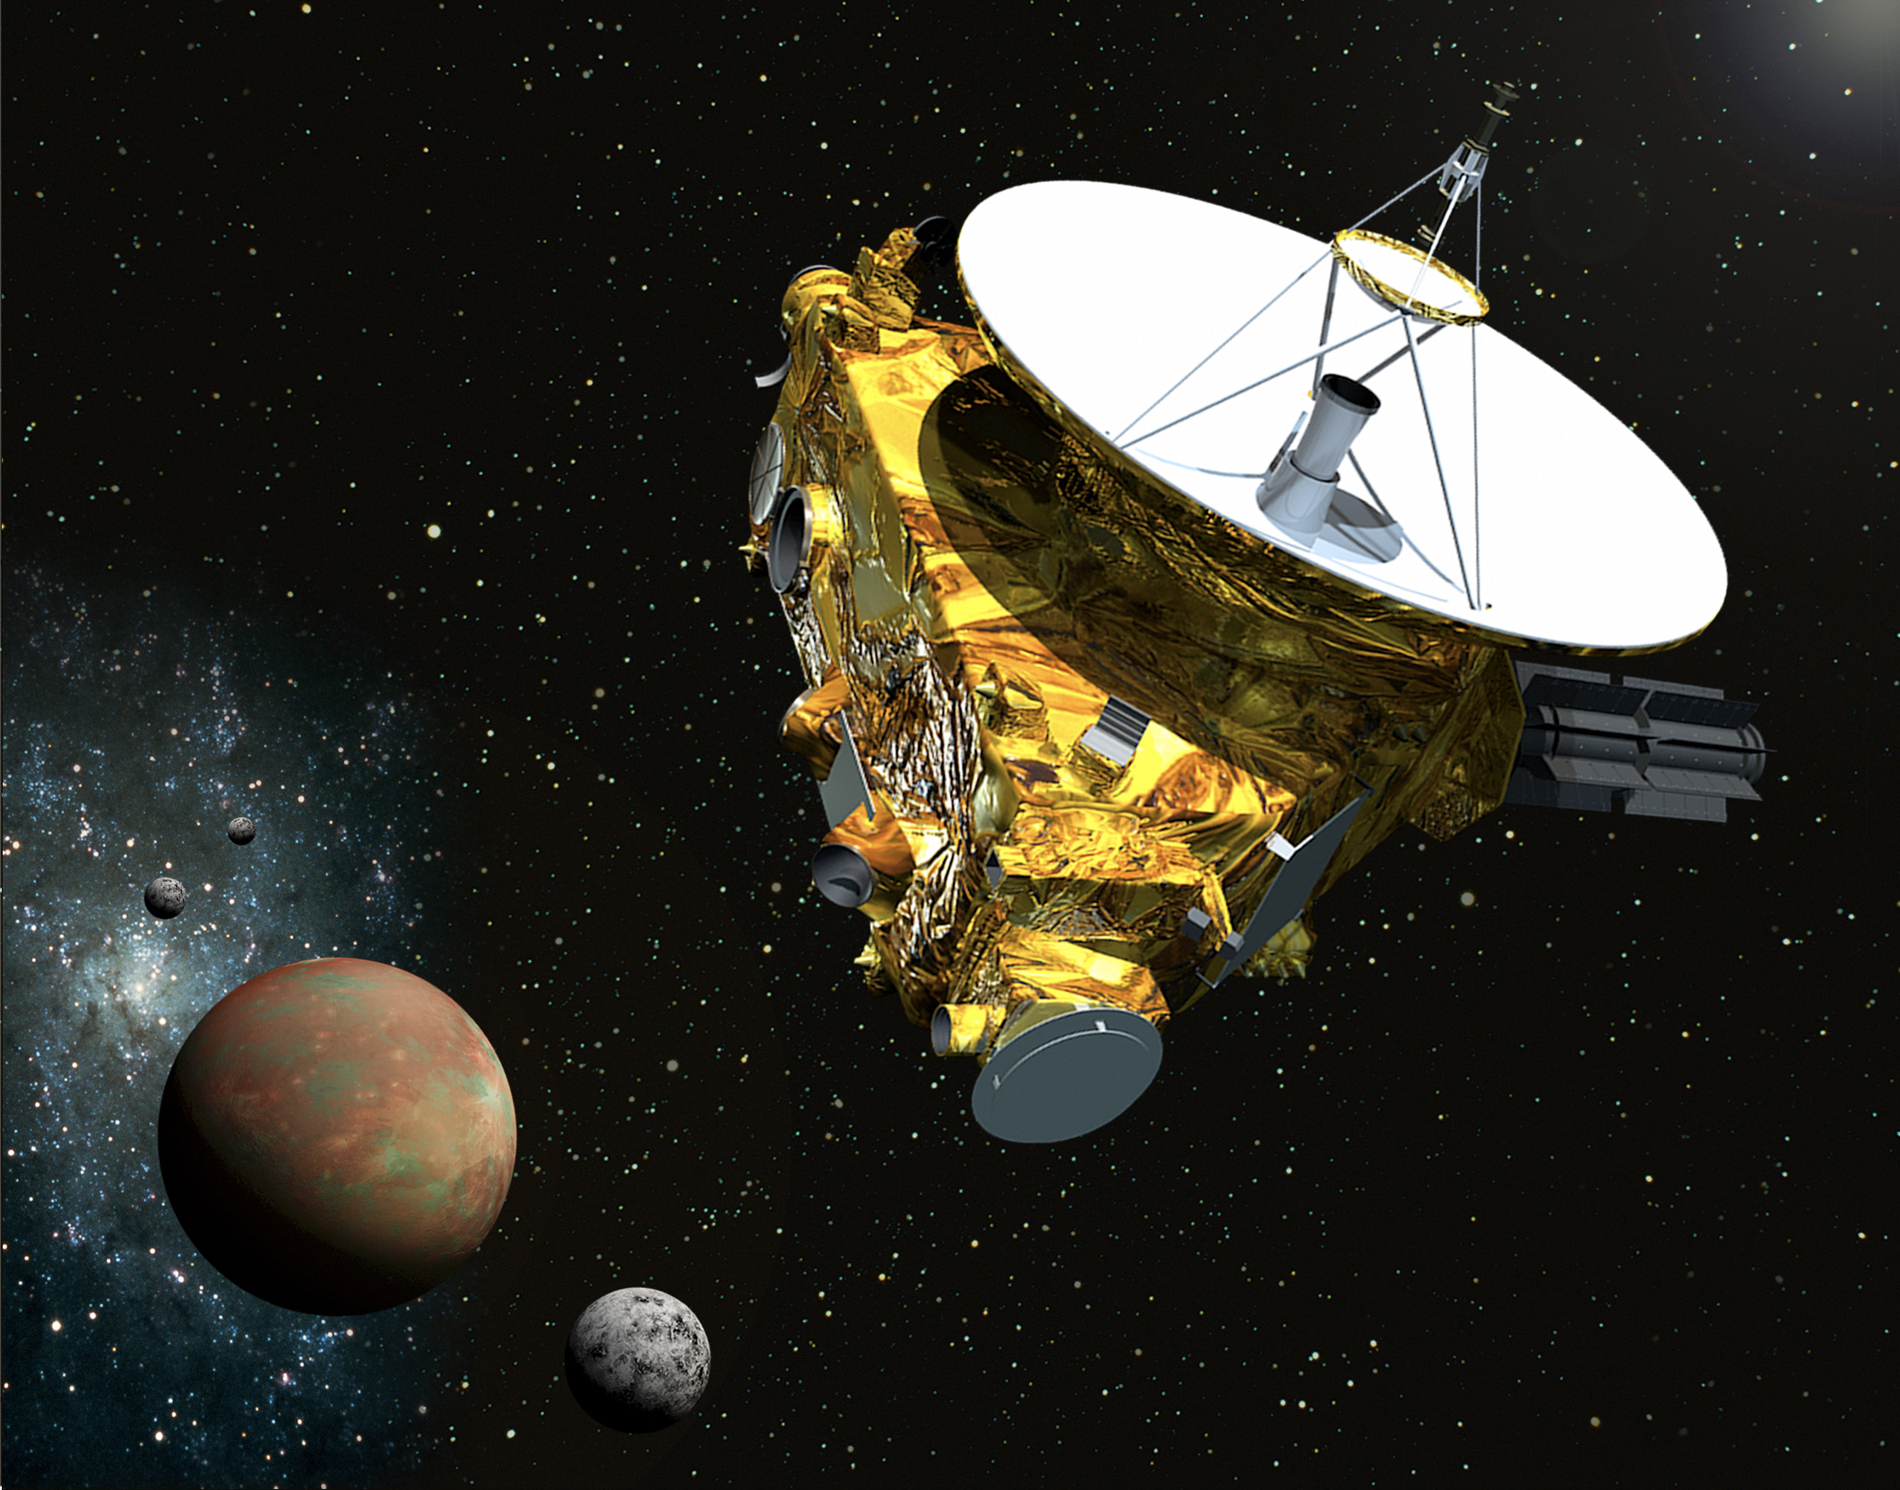 Want to Phone Aliens? Help Get Your Messages On NASA's Pluto-Bound Spacecraft